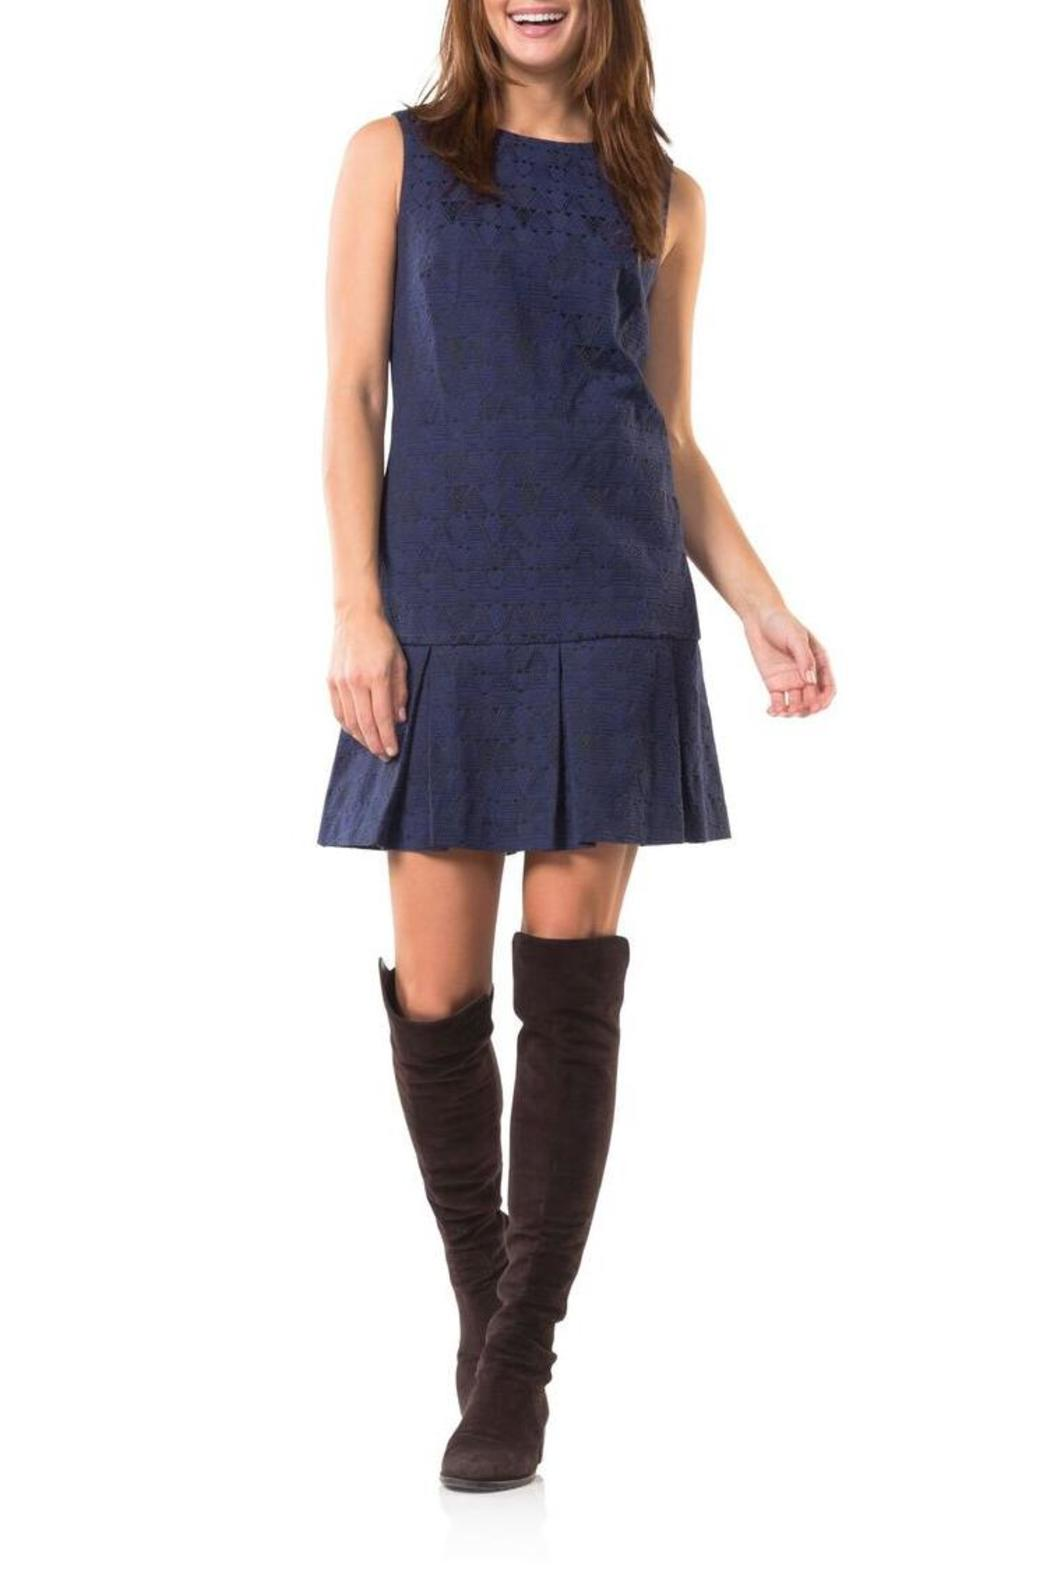 Sail to Sable Jacquard Dress from West Virginia by ...